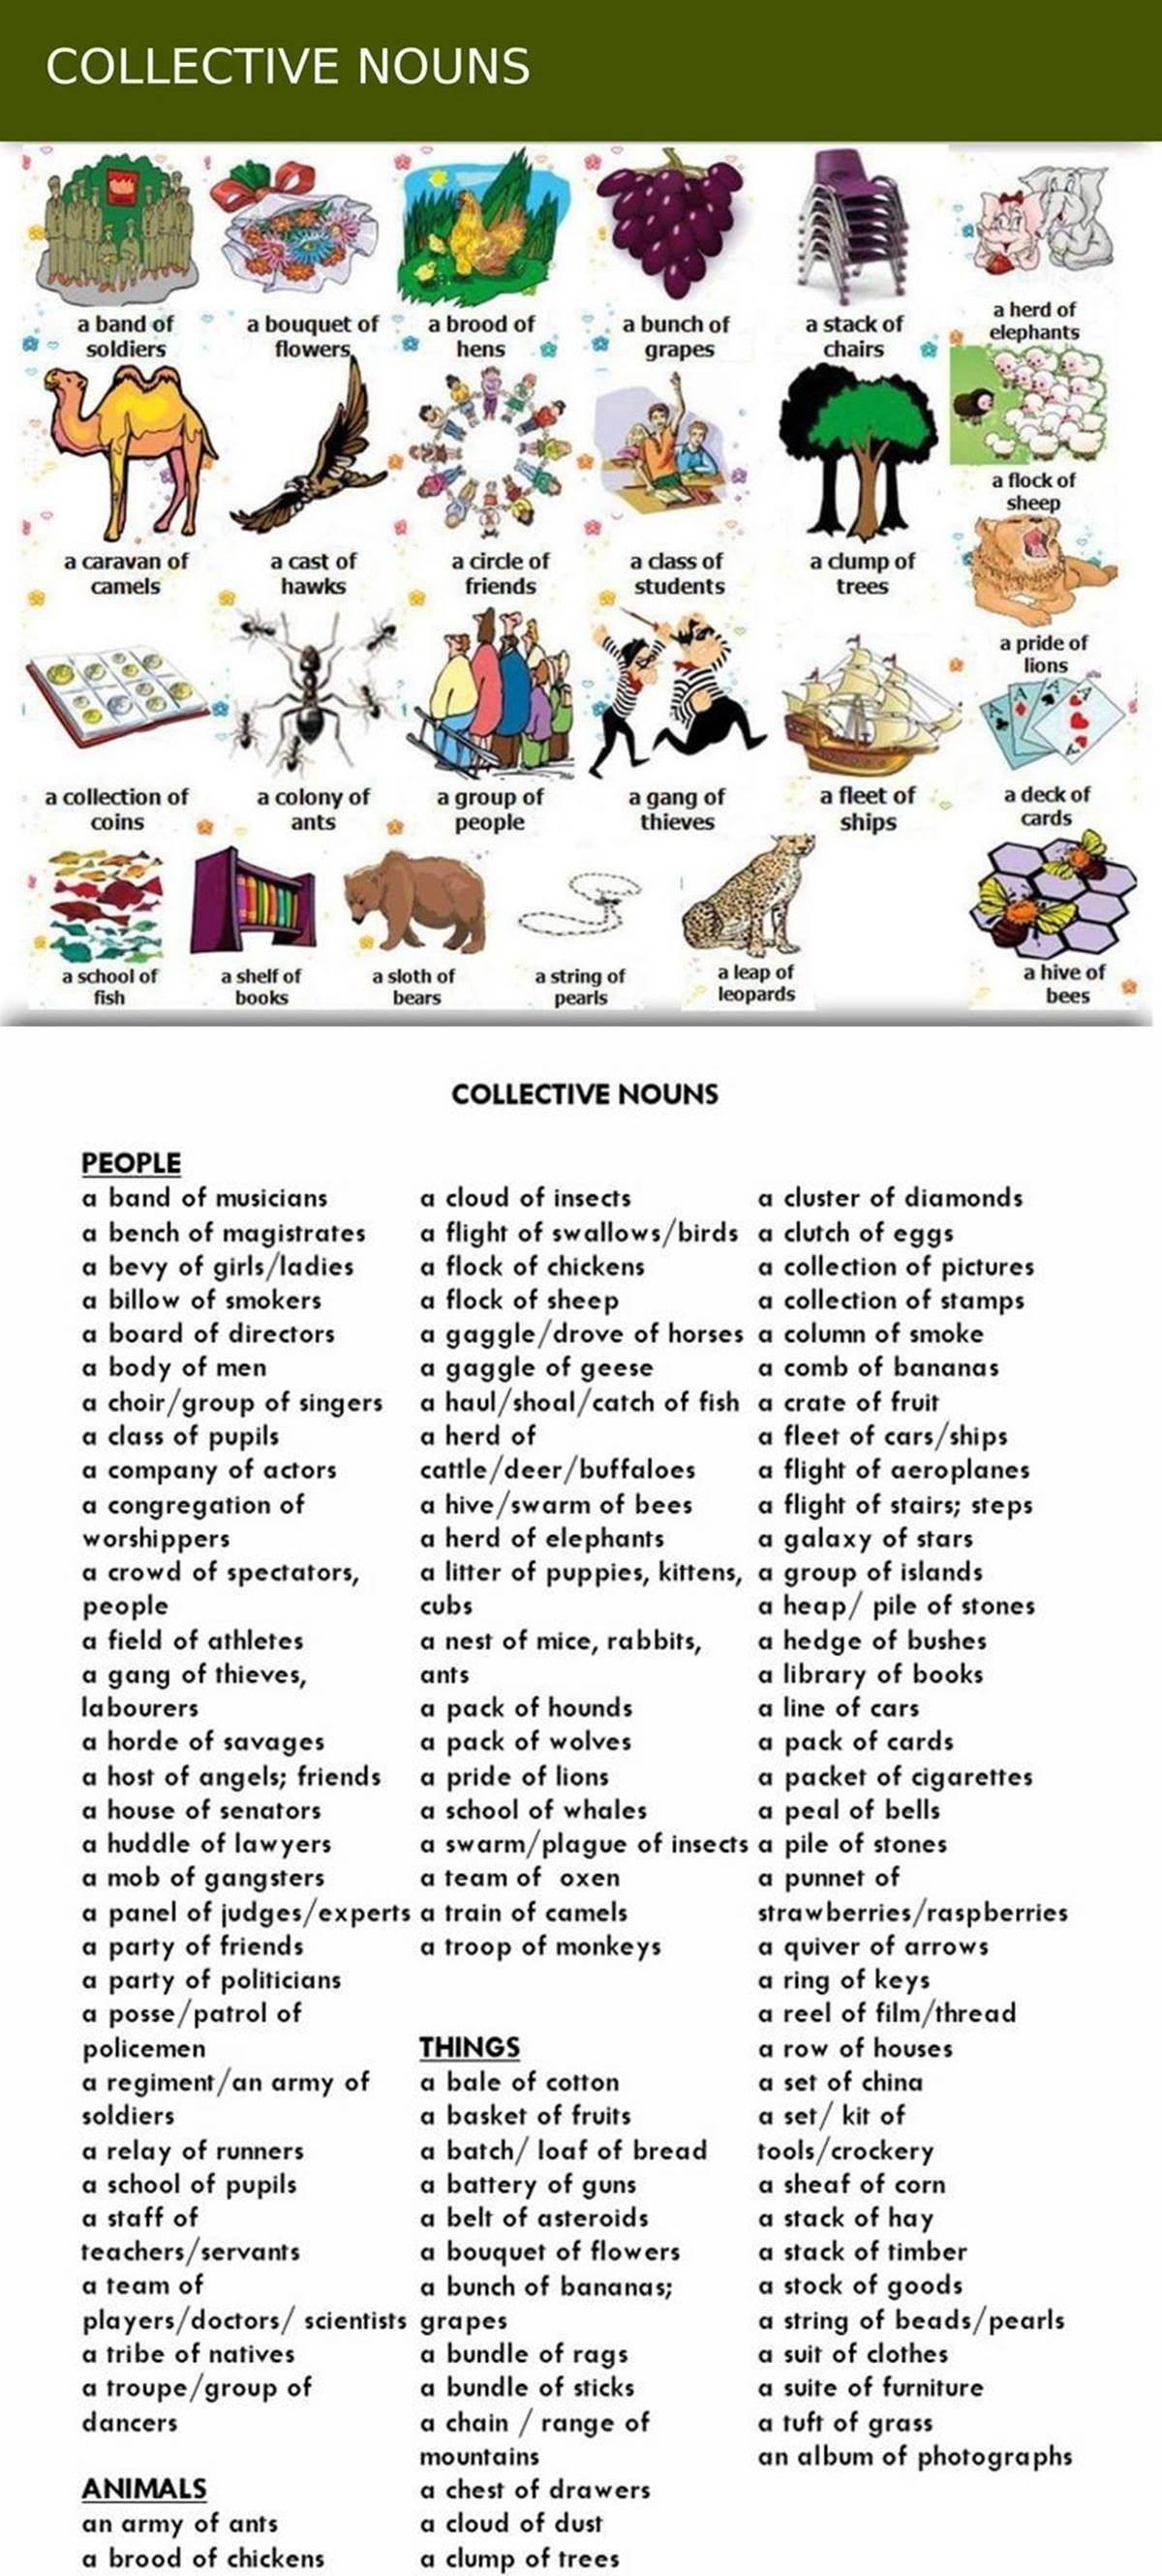 Collective Nouns Group Words For People Animals And